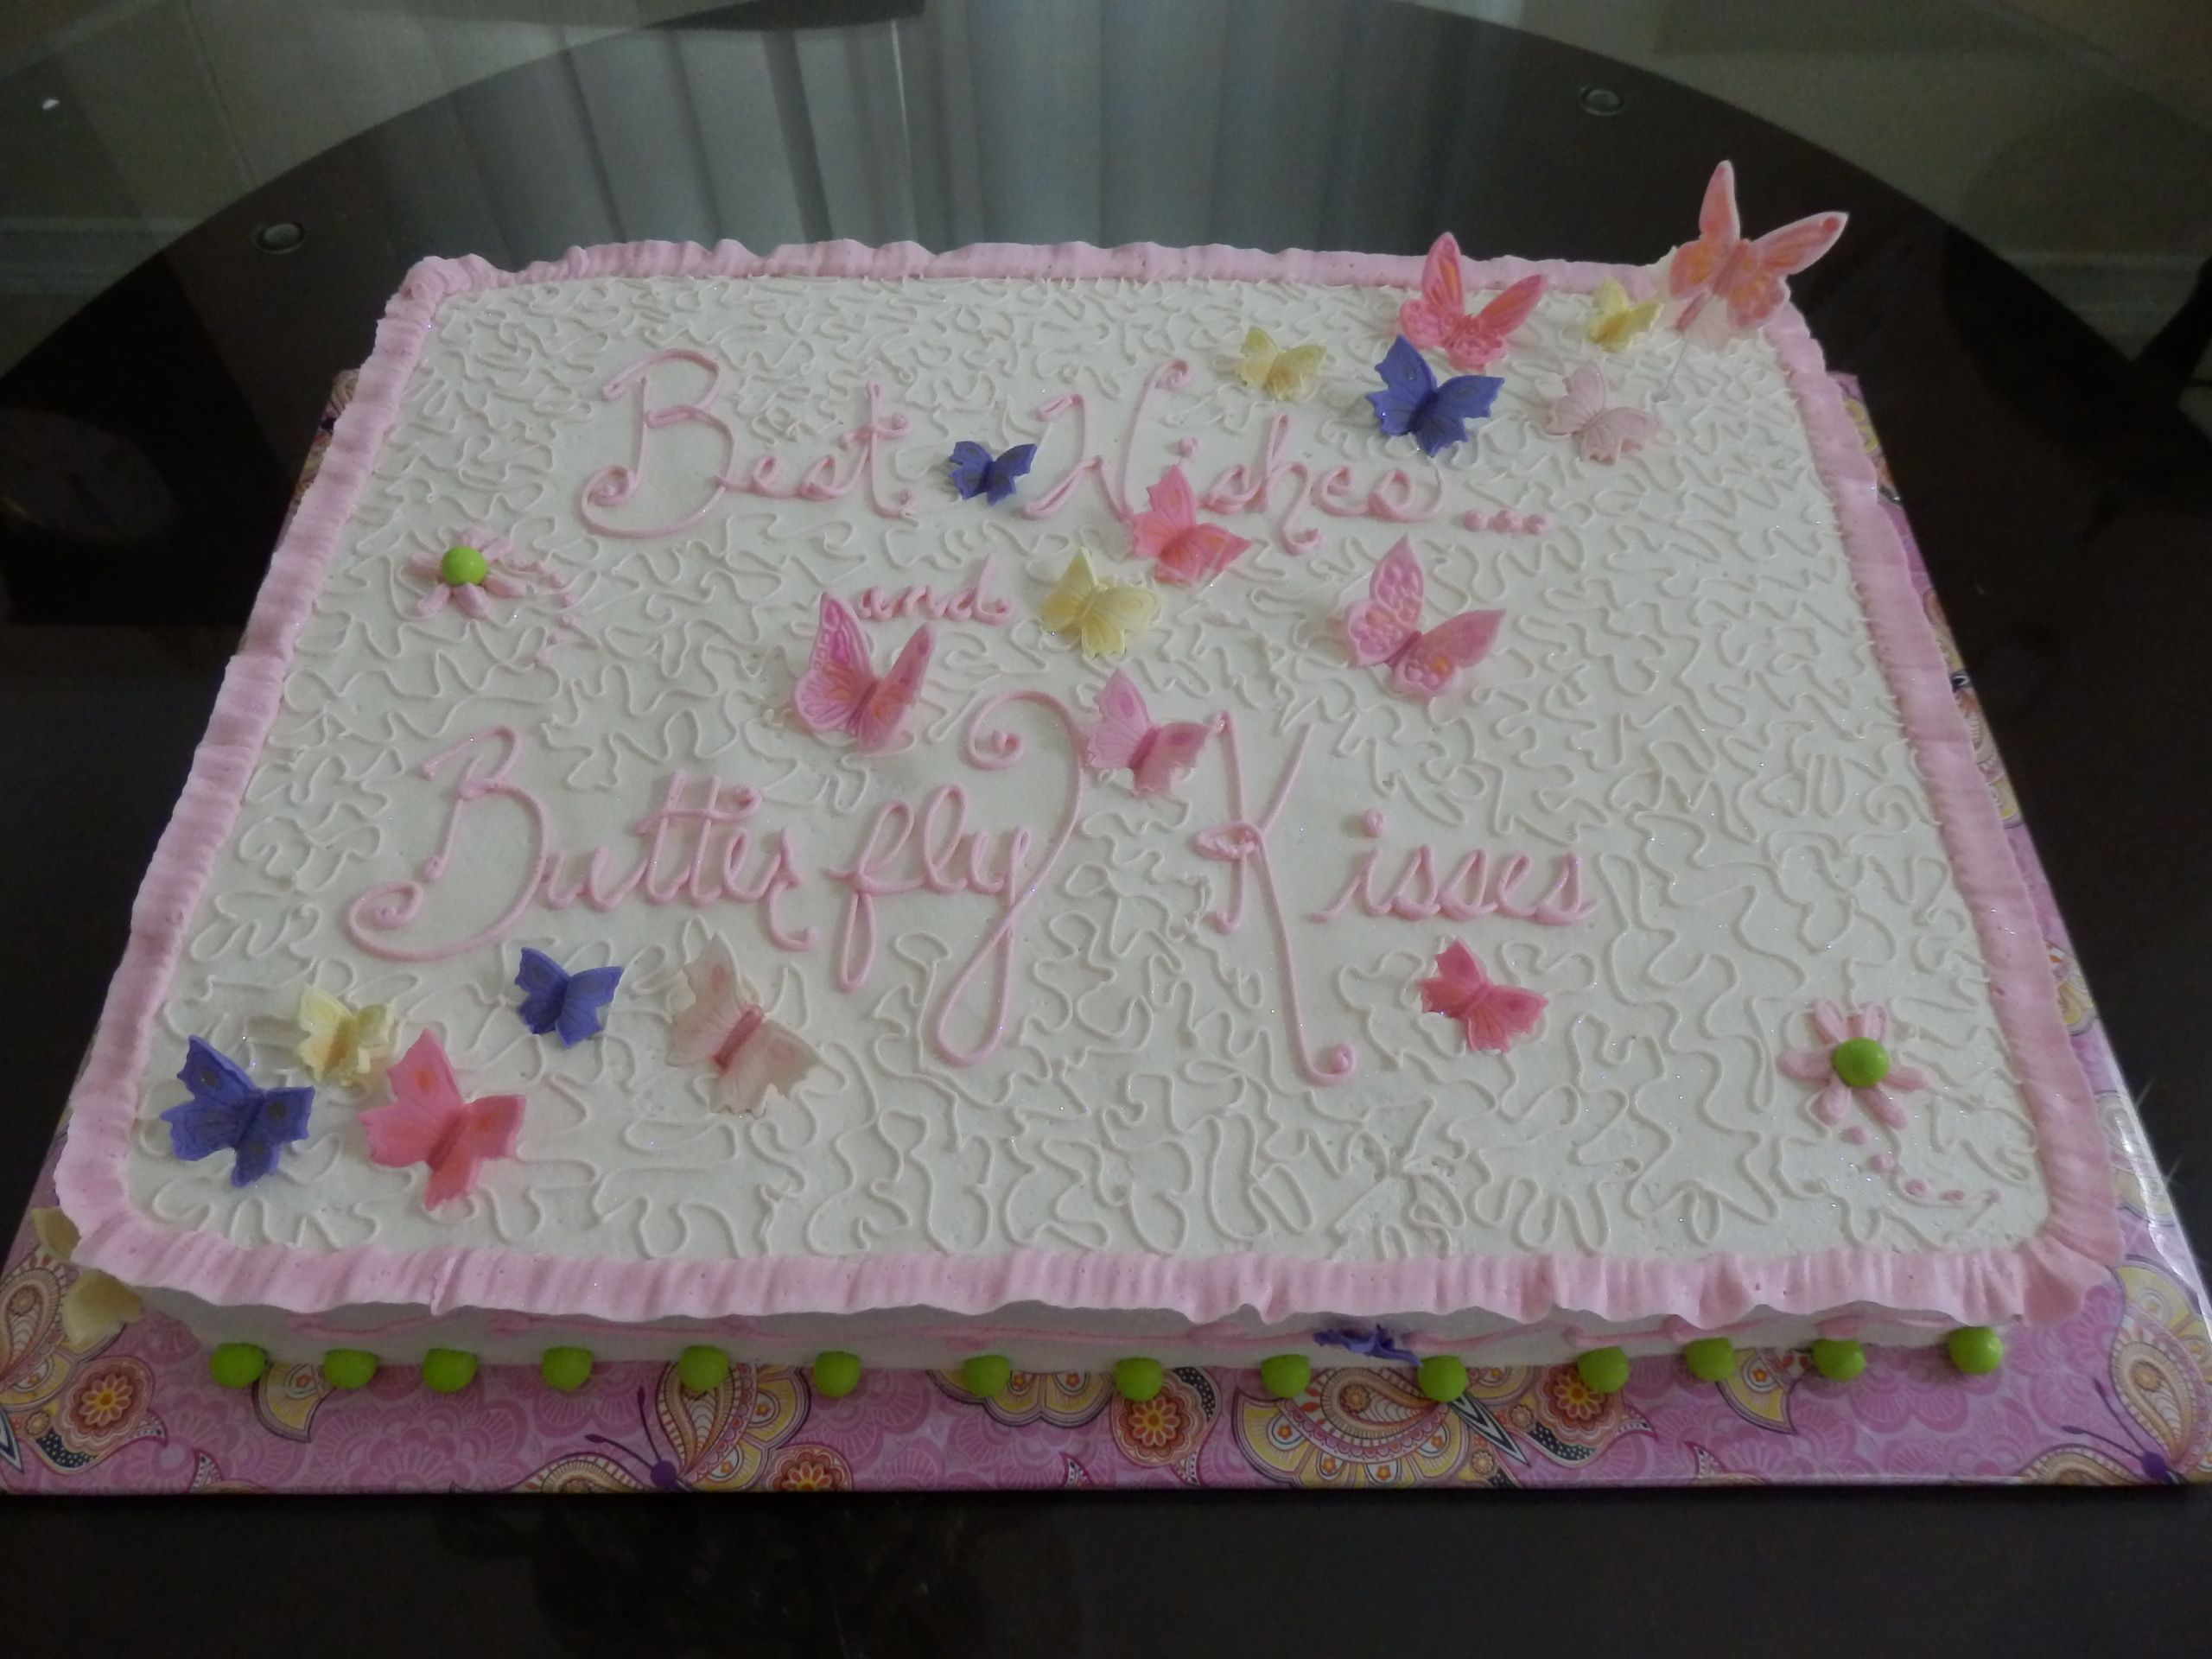 Baby shower cake filled with best wishes and butterfly